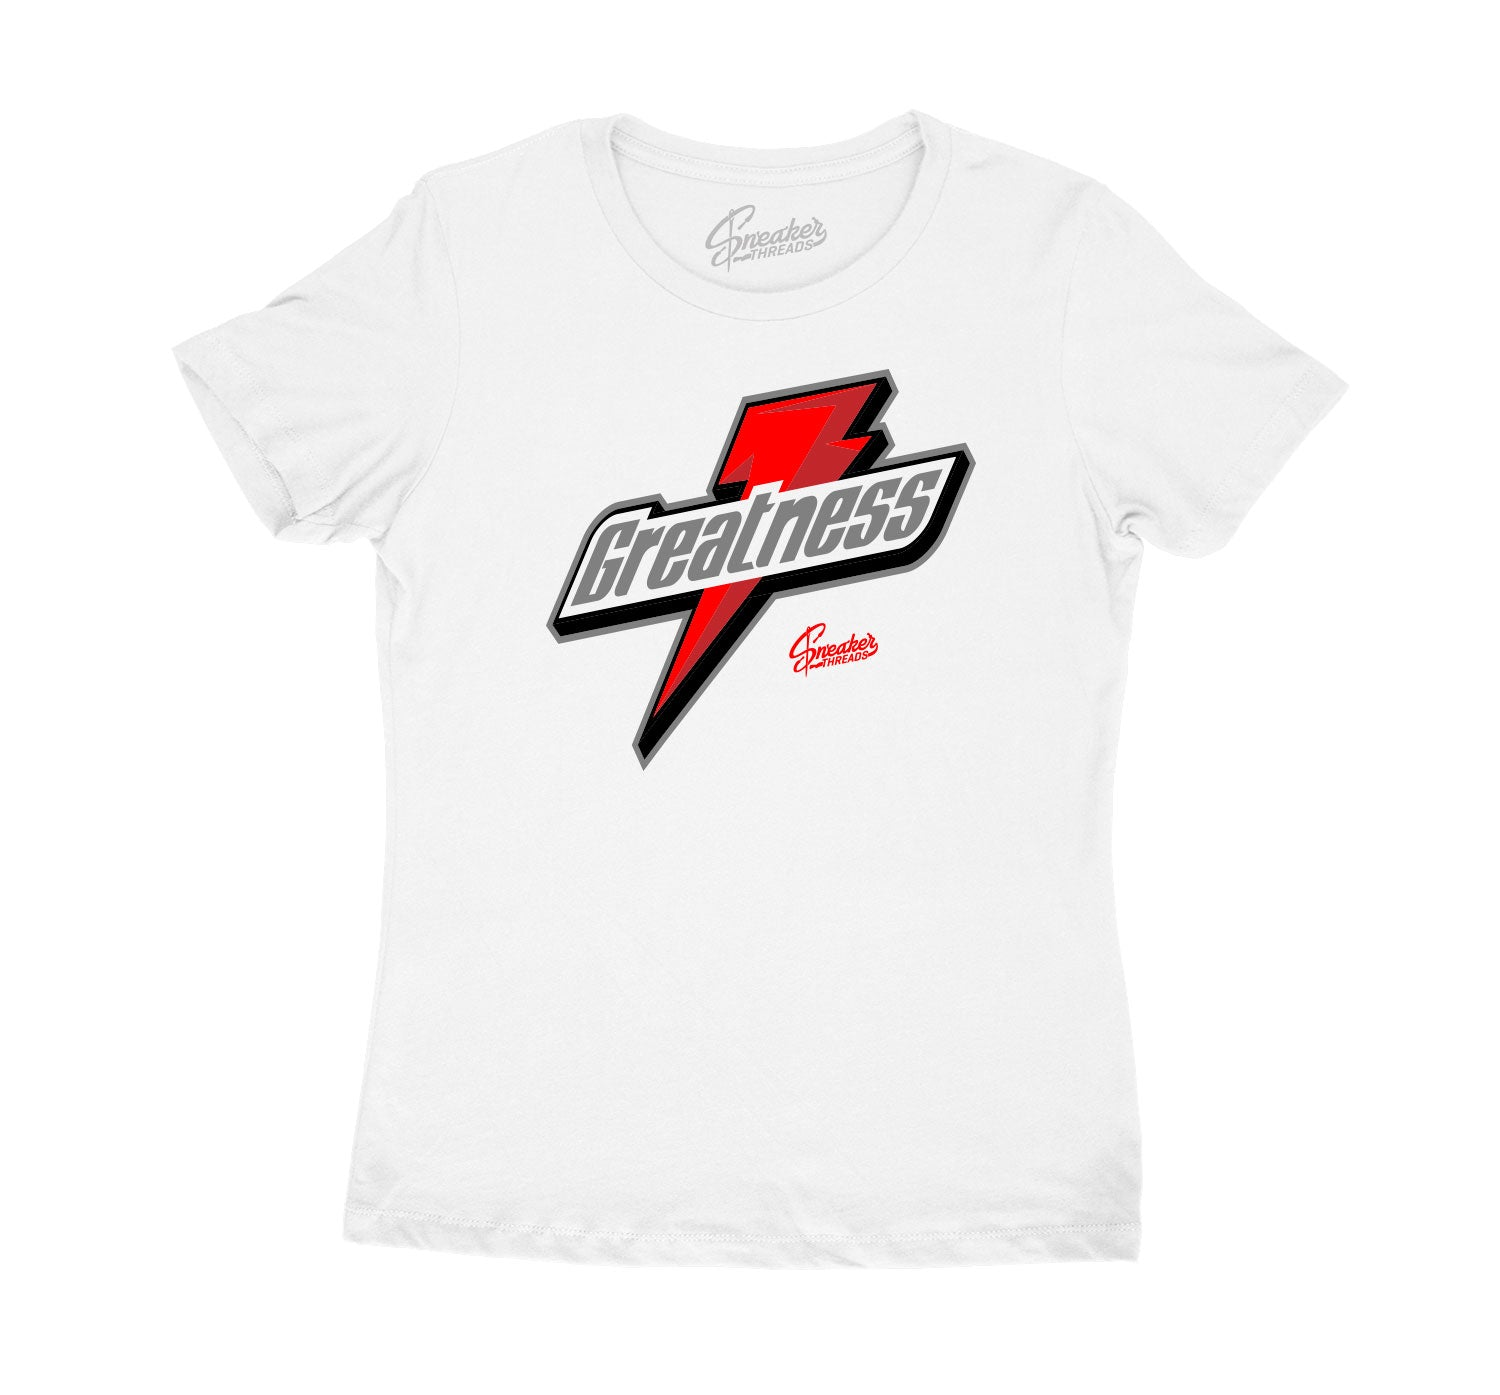 Womens - Bred 11 Greatness Shirt